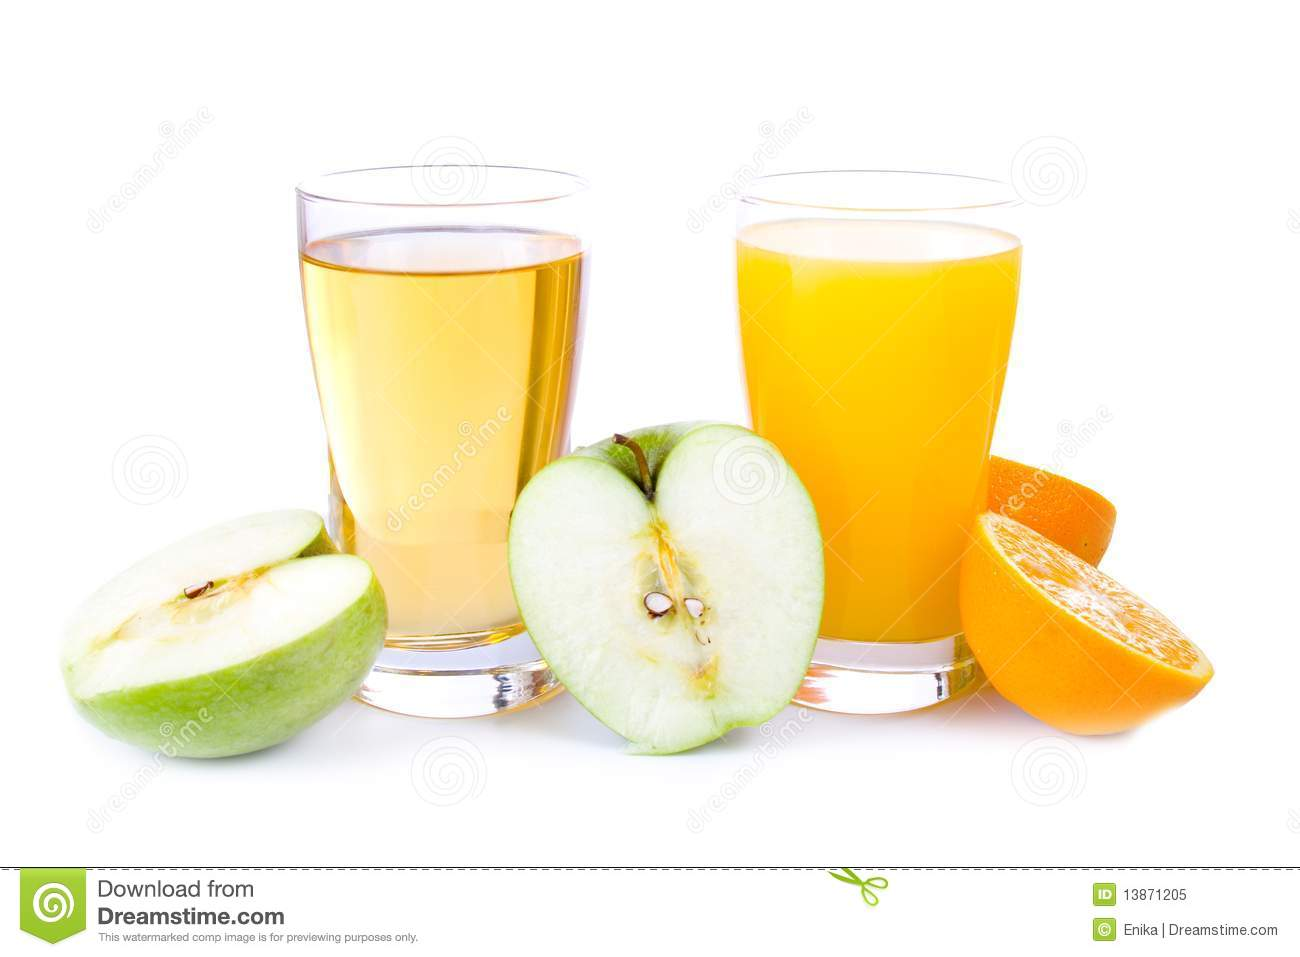 glass of apple and orange juice royalty free stock photo free clip art of applesauce free clipart of apple hill